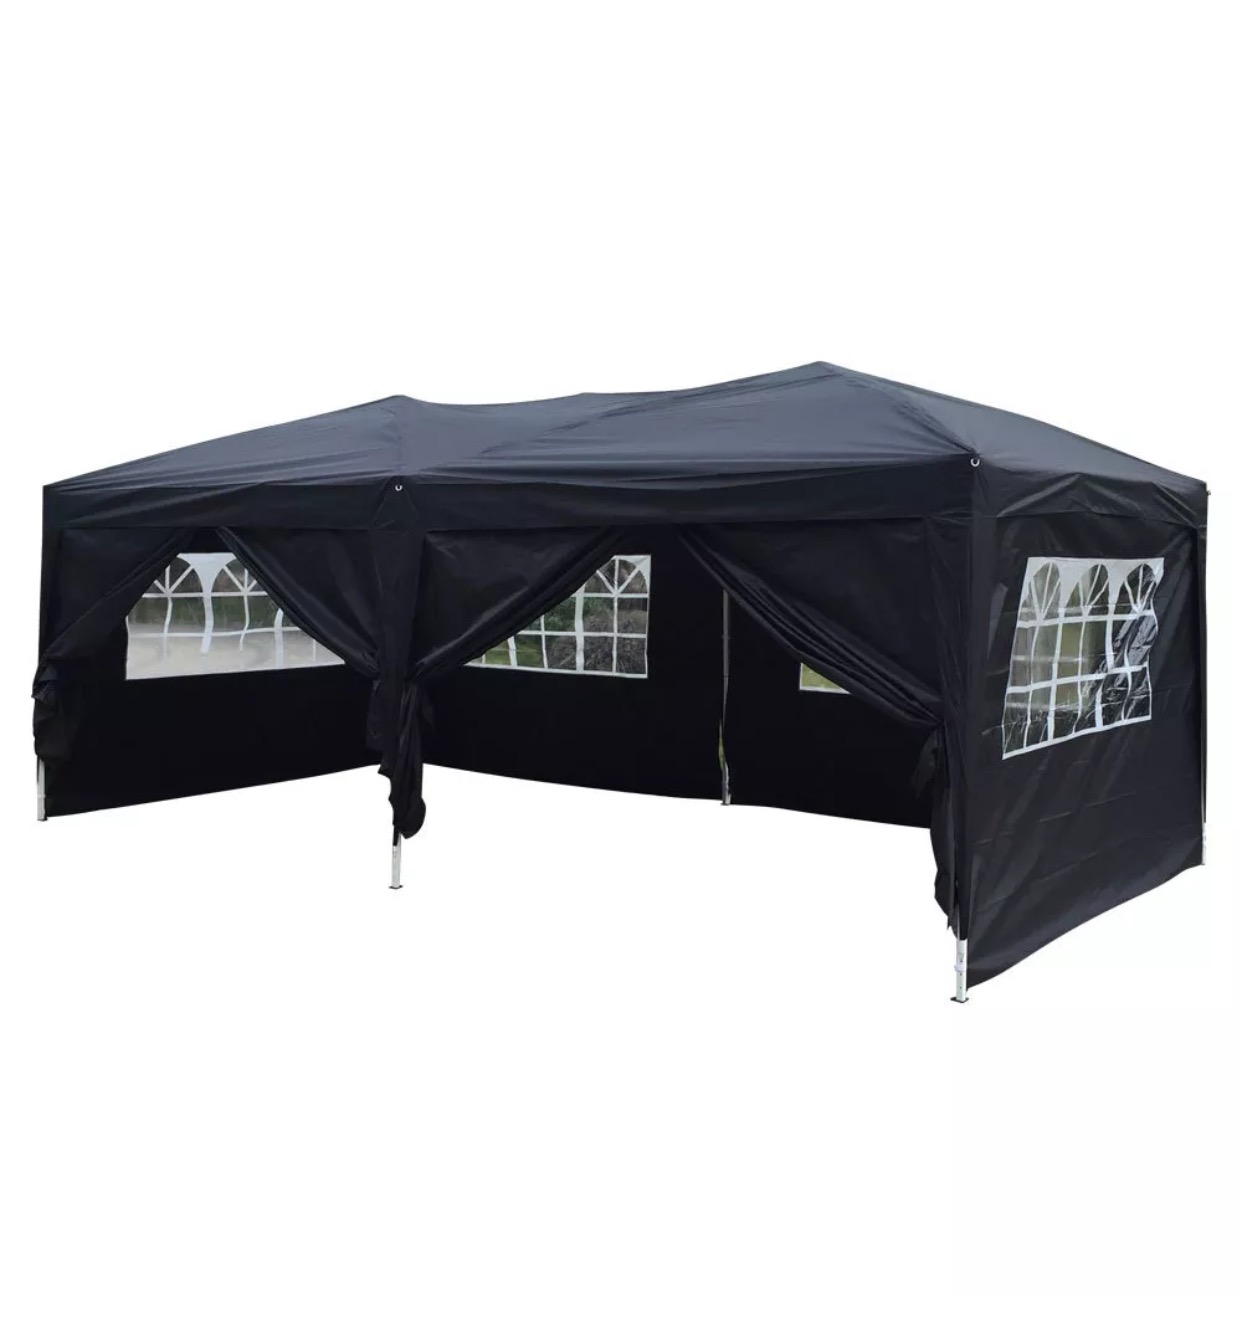 Black 10x20 pop-up party tent (6 walls)  sc 1 st  Todayu0027s Tec - Storenvy & Black 10x20 pop-up party tent (6 walls) · Todayu0027s Tec · Online ...